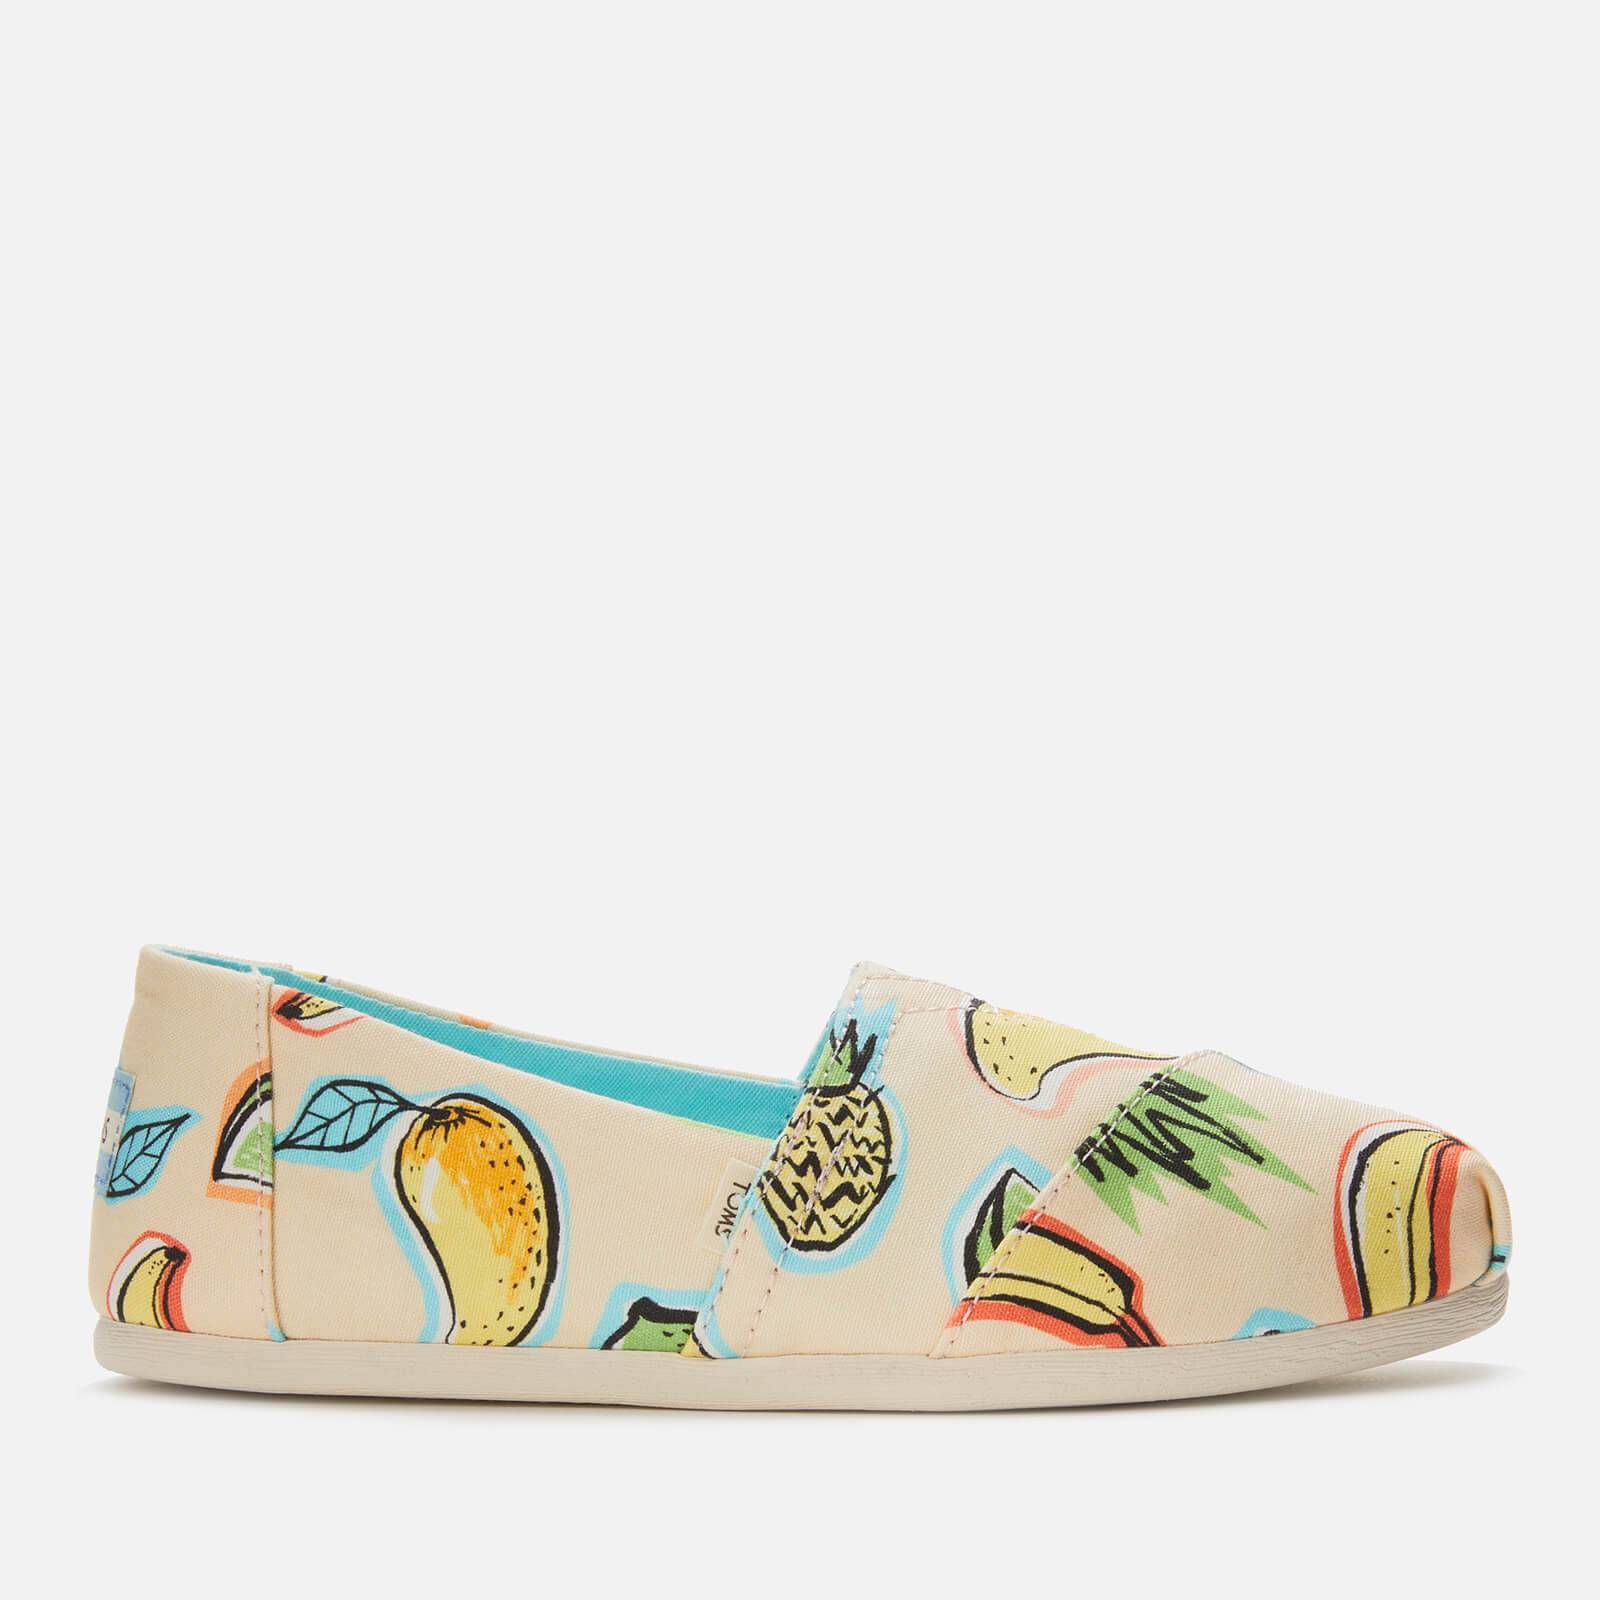 TOMS Women's Alpargata Vegan Slip-On Pumps - Cuba Fruit - UK 4